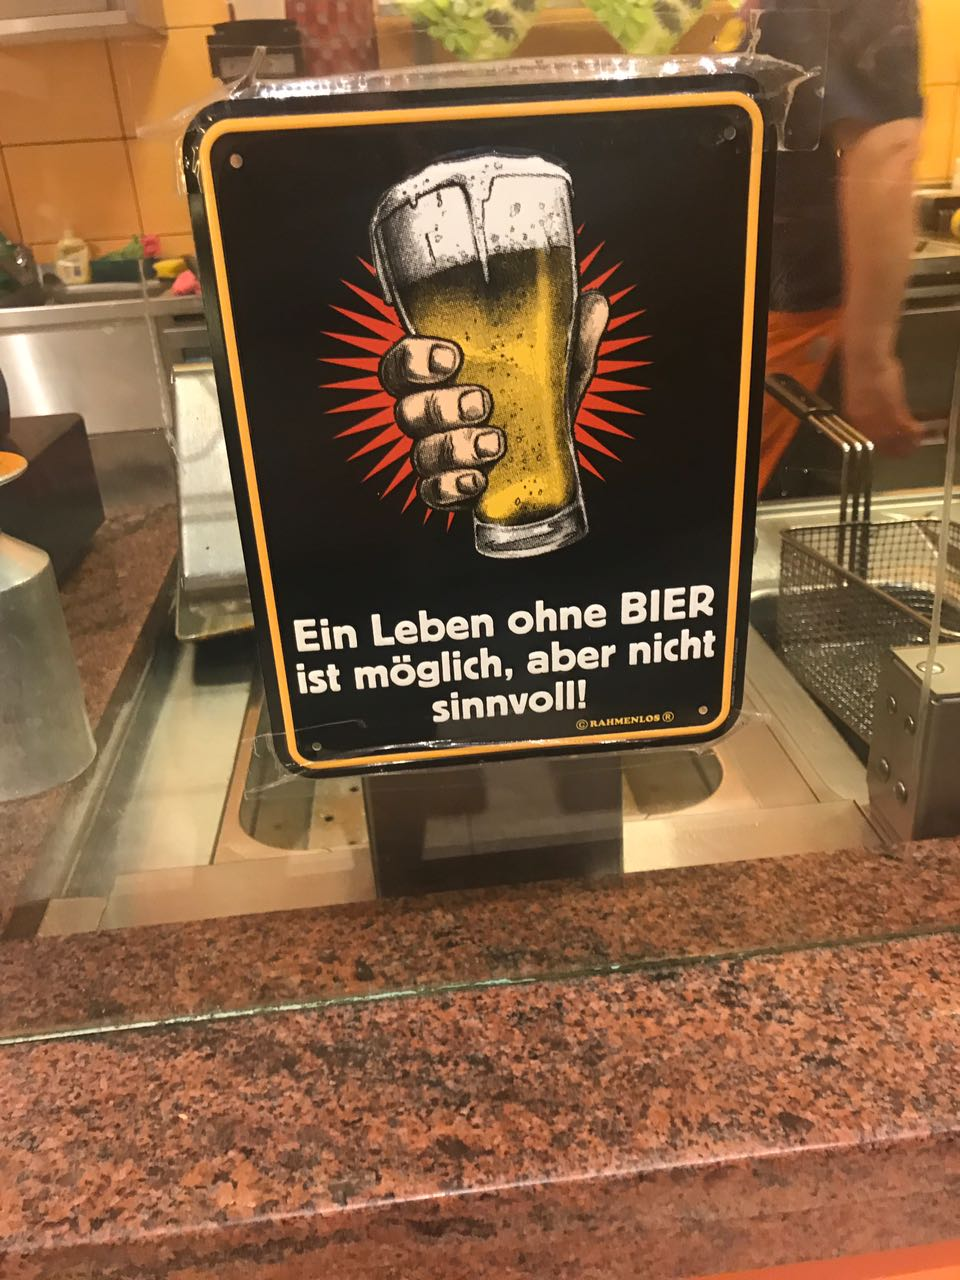 """Abimbola's translation: """"A life without beer is lovely but not sensible"""" ... Err, sorry Germans, I'll pass"""